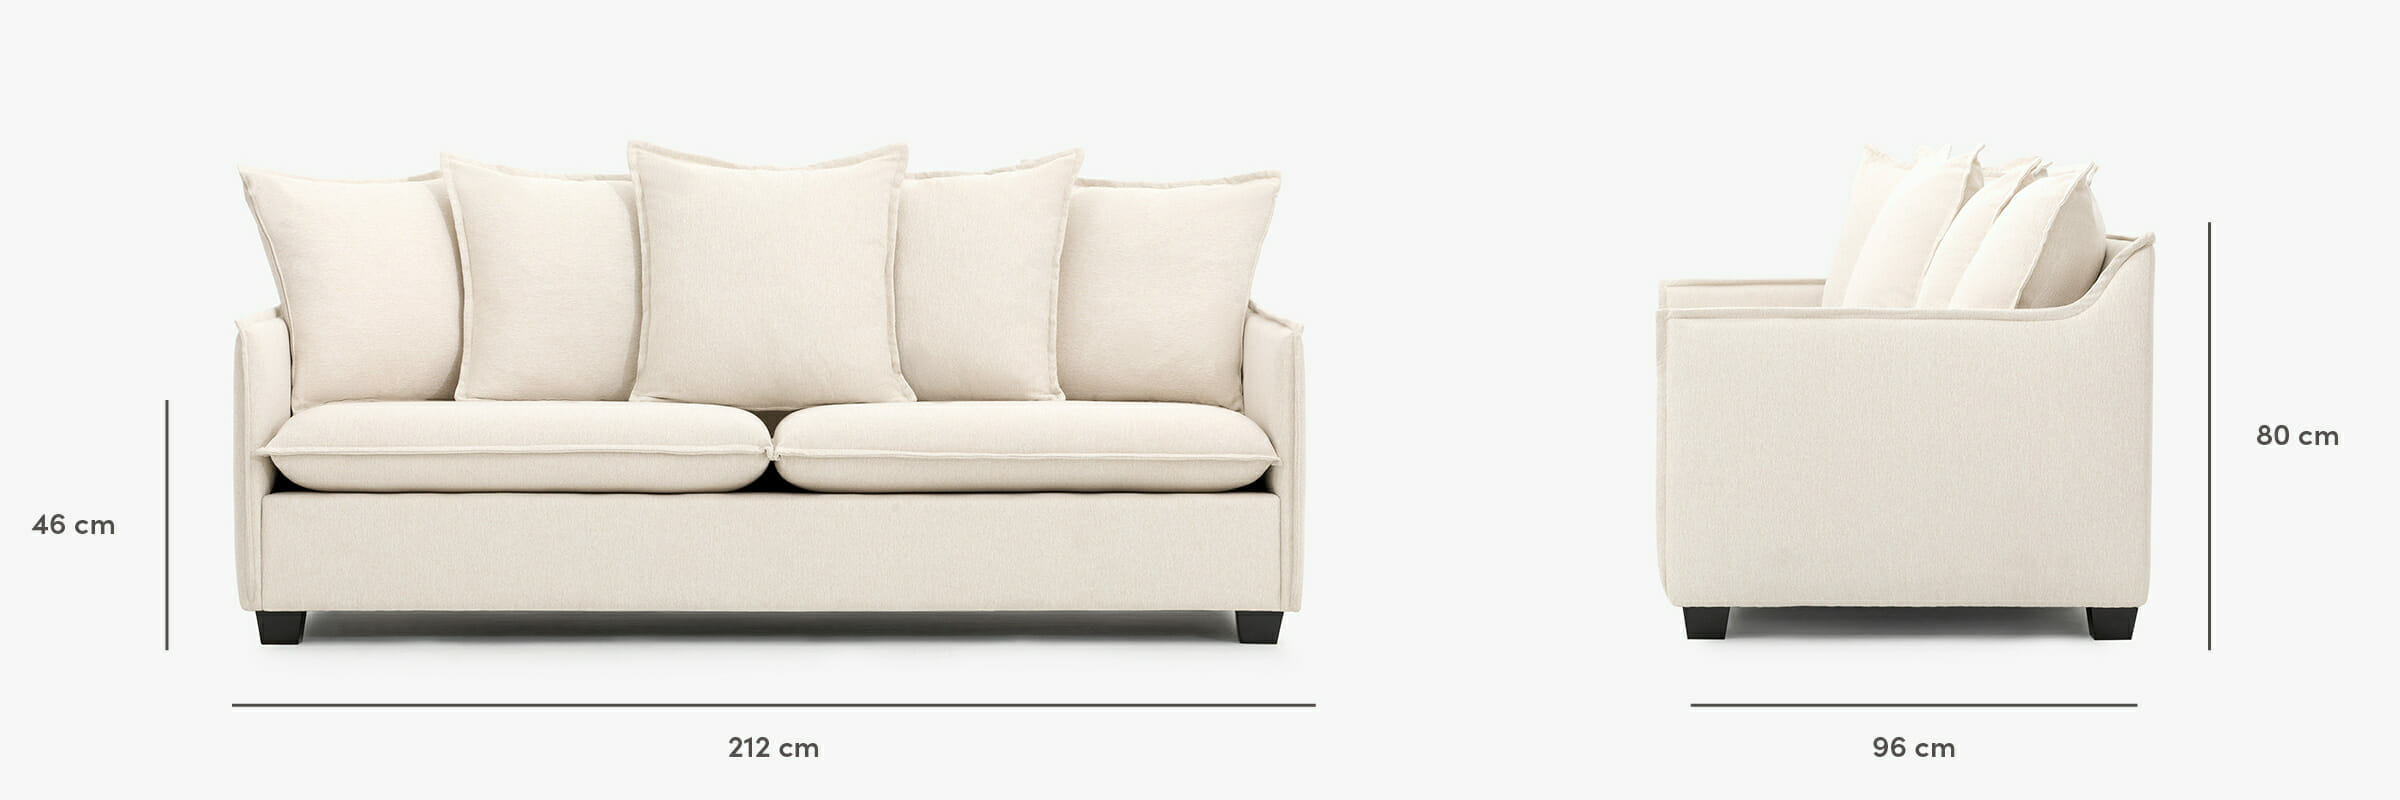 Miami sofa dimensions